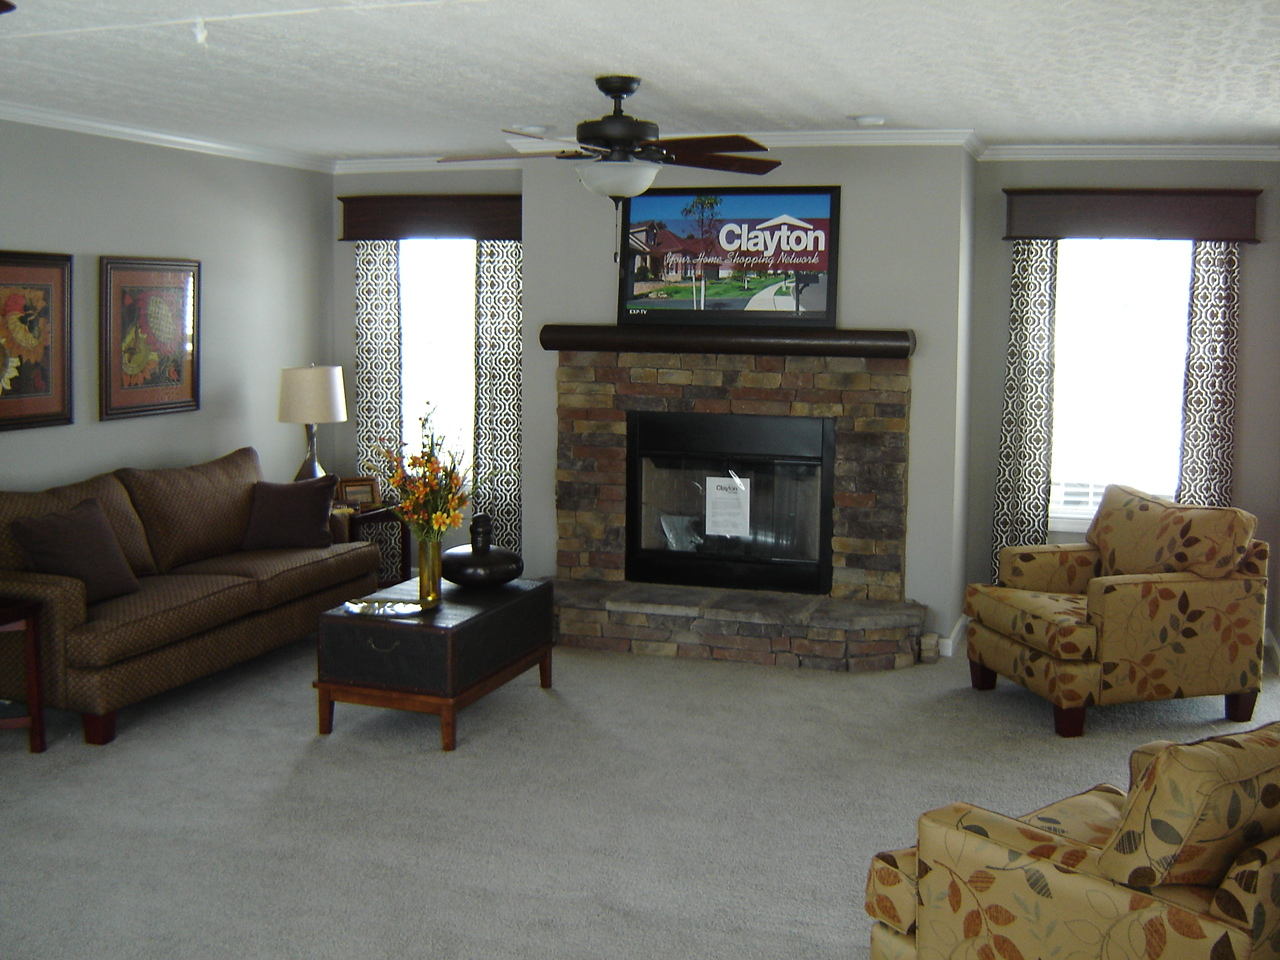 Clayton Homes - Mobile Home Dealer - Georgetown, KY 40324 on one-bedroom mobile homes with fireplace, clayton mobile homes floor plans, manufactured fireplace inserts for fireplace,